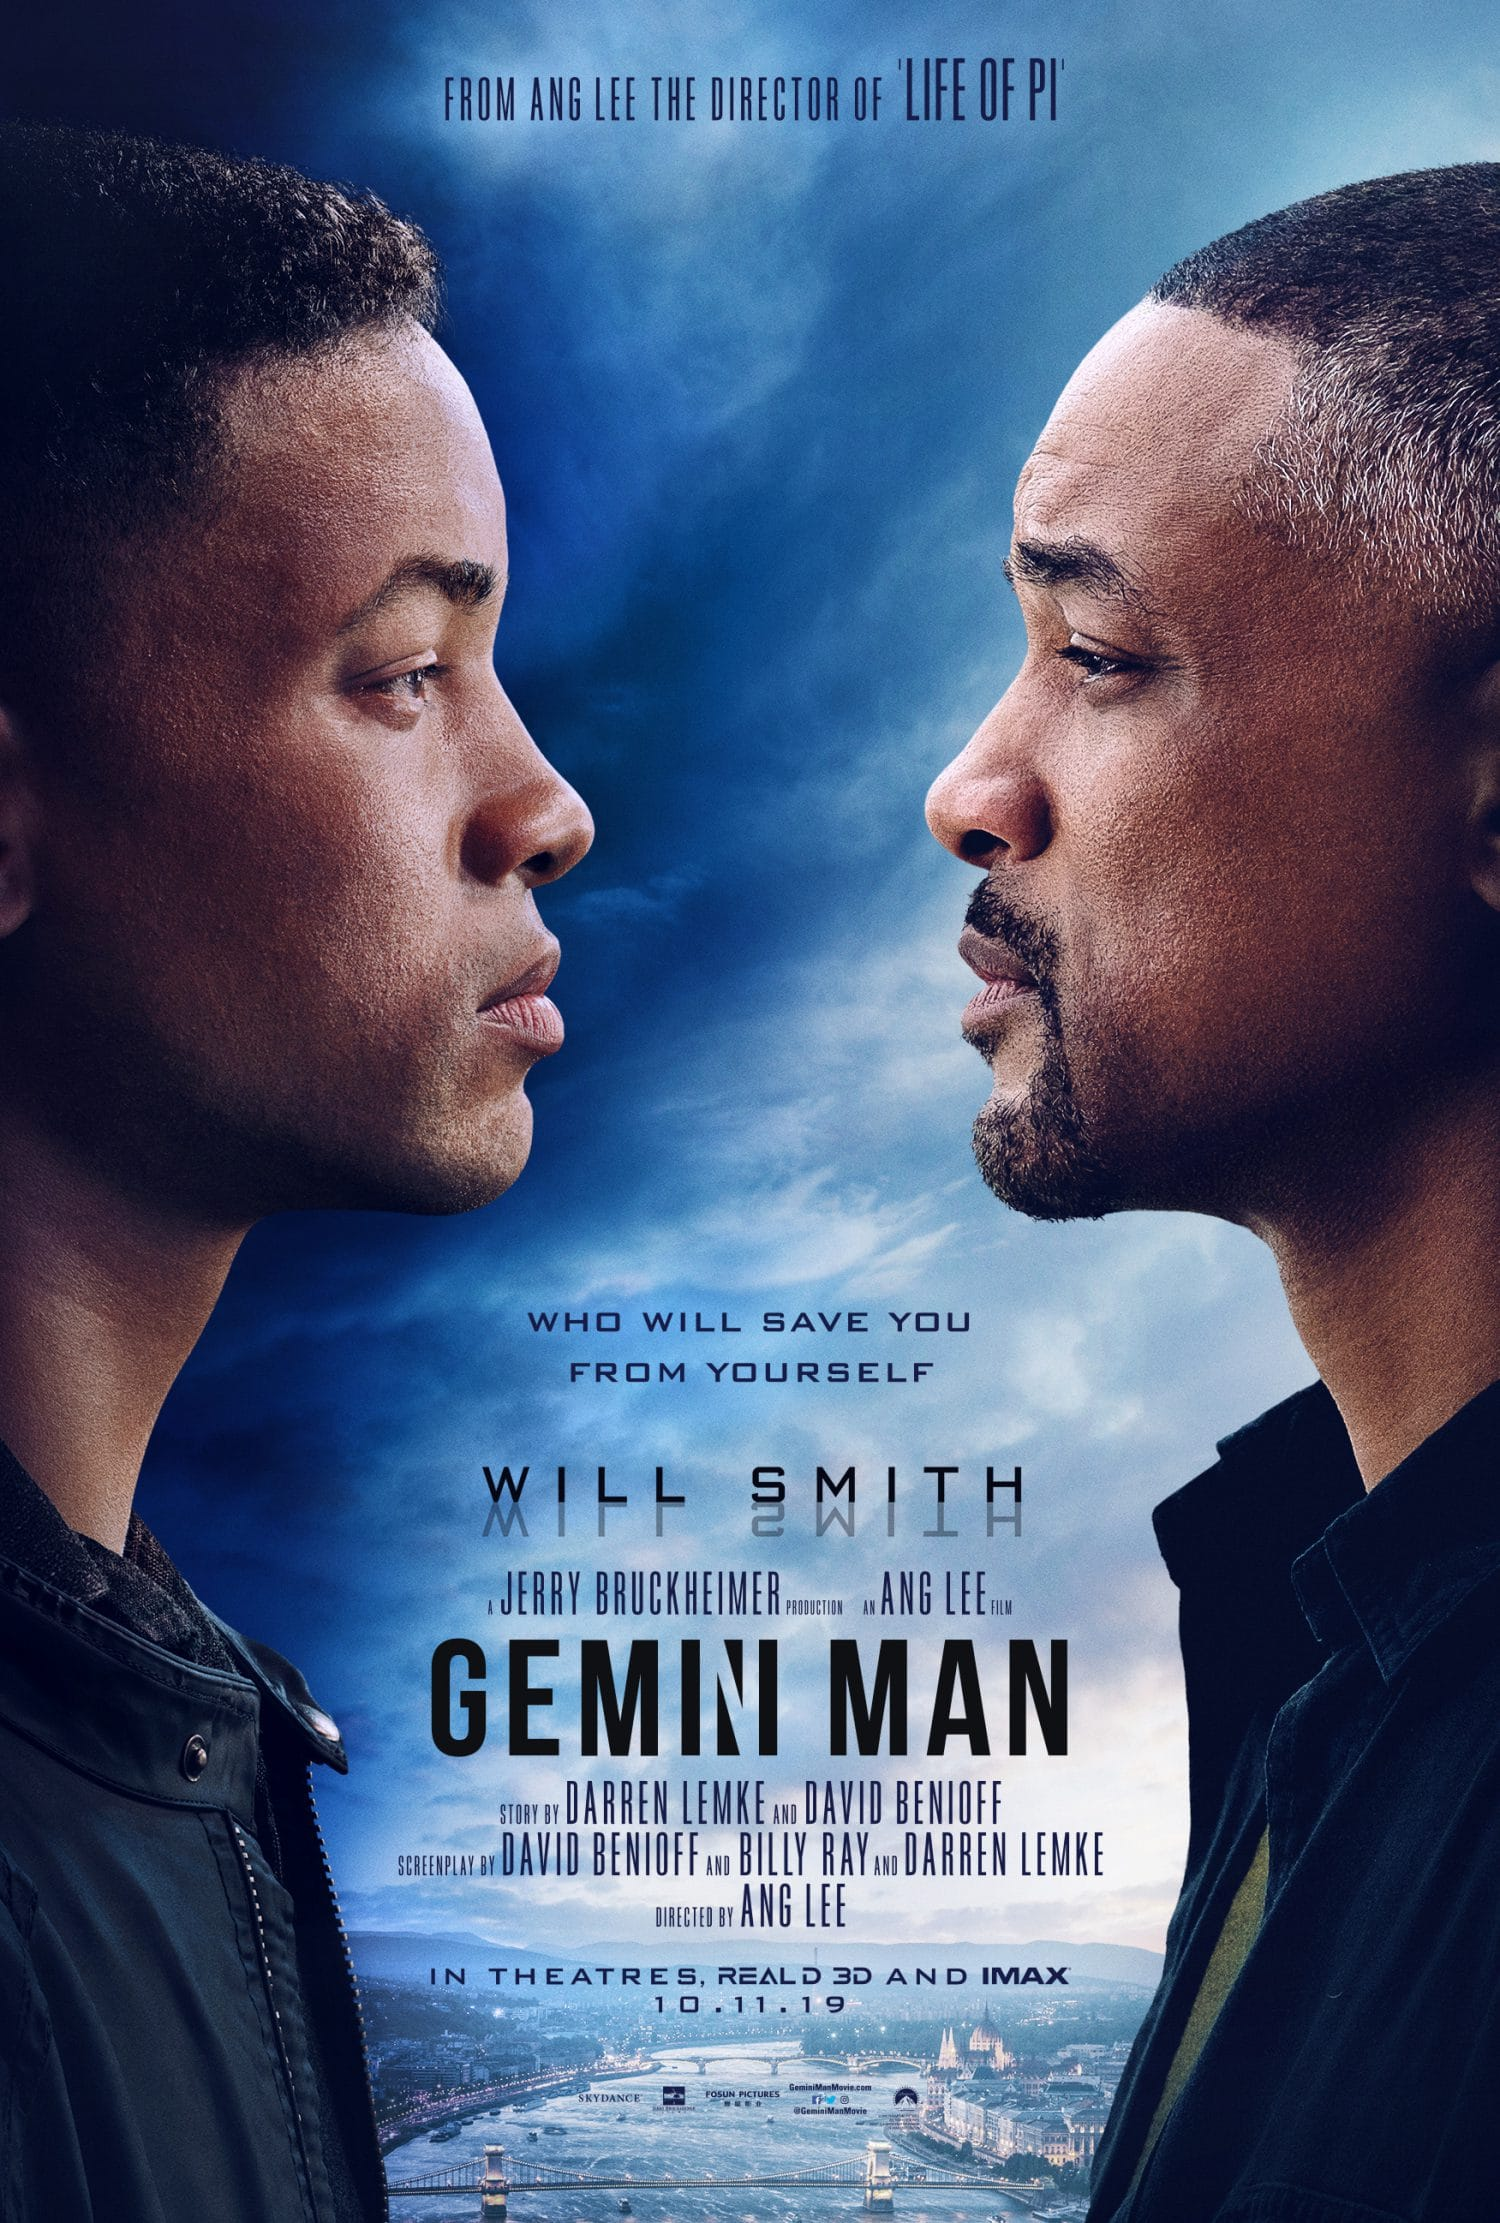 It's Will Smith versus Will Smith in the Gemini Man trailer.